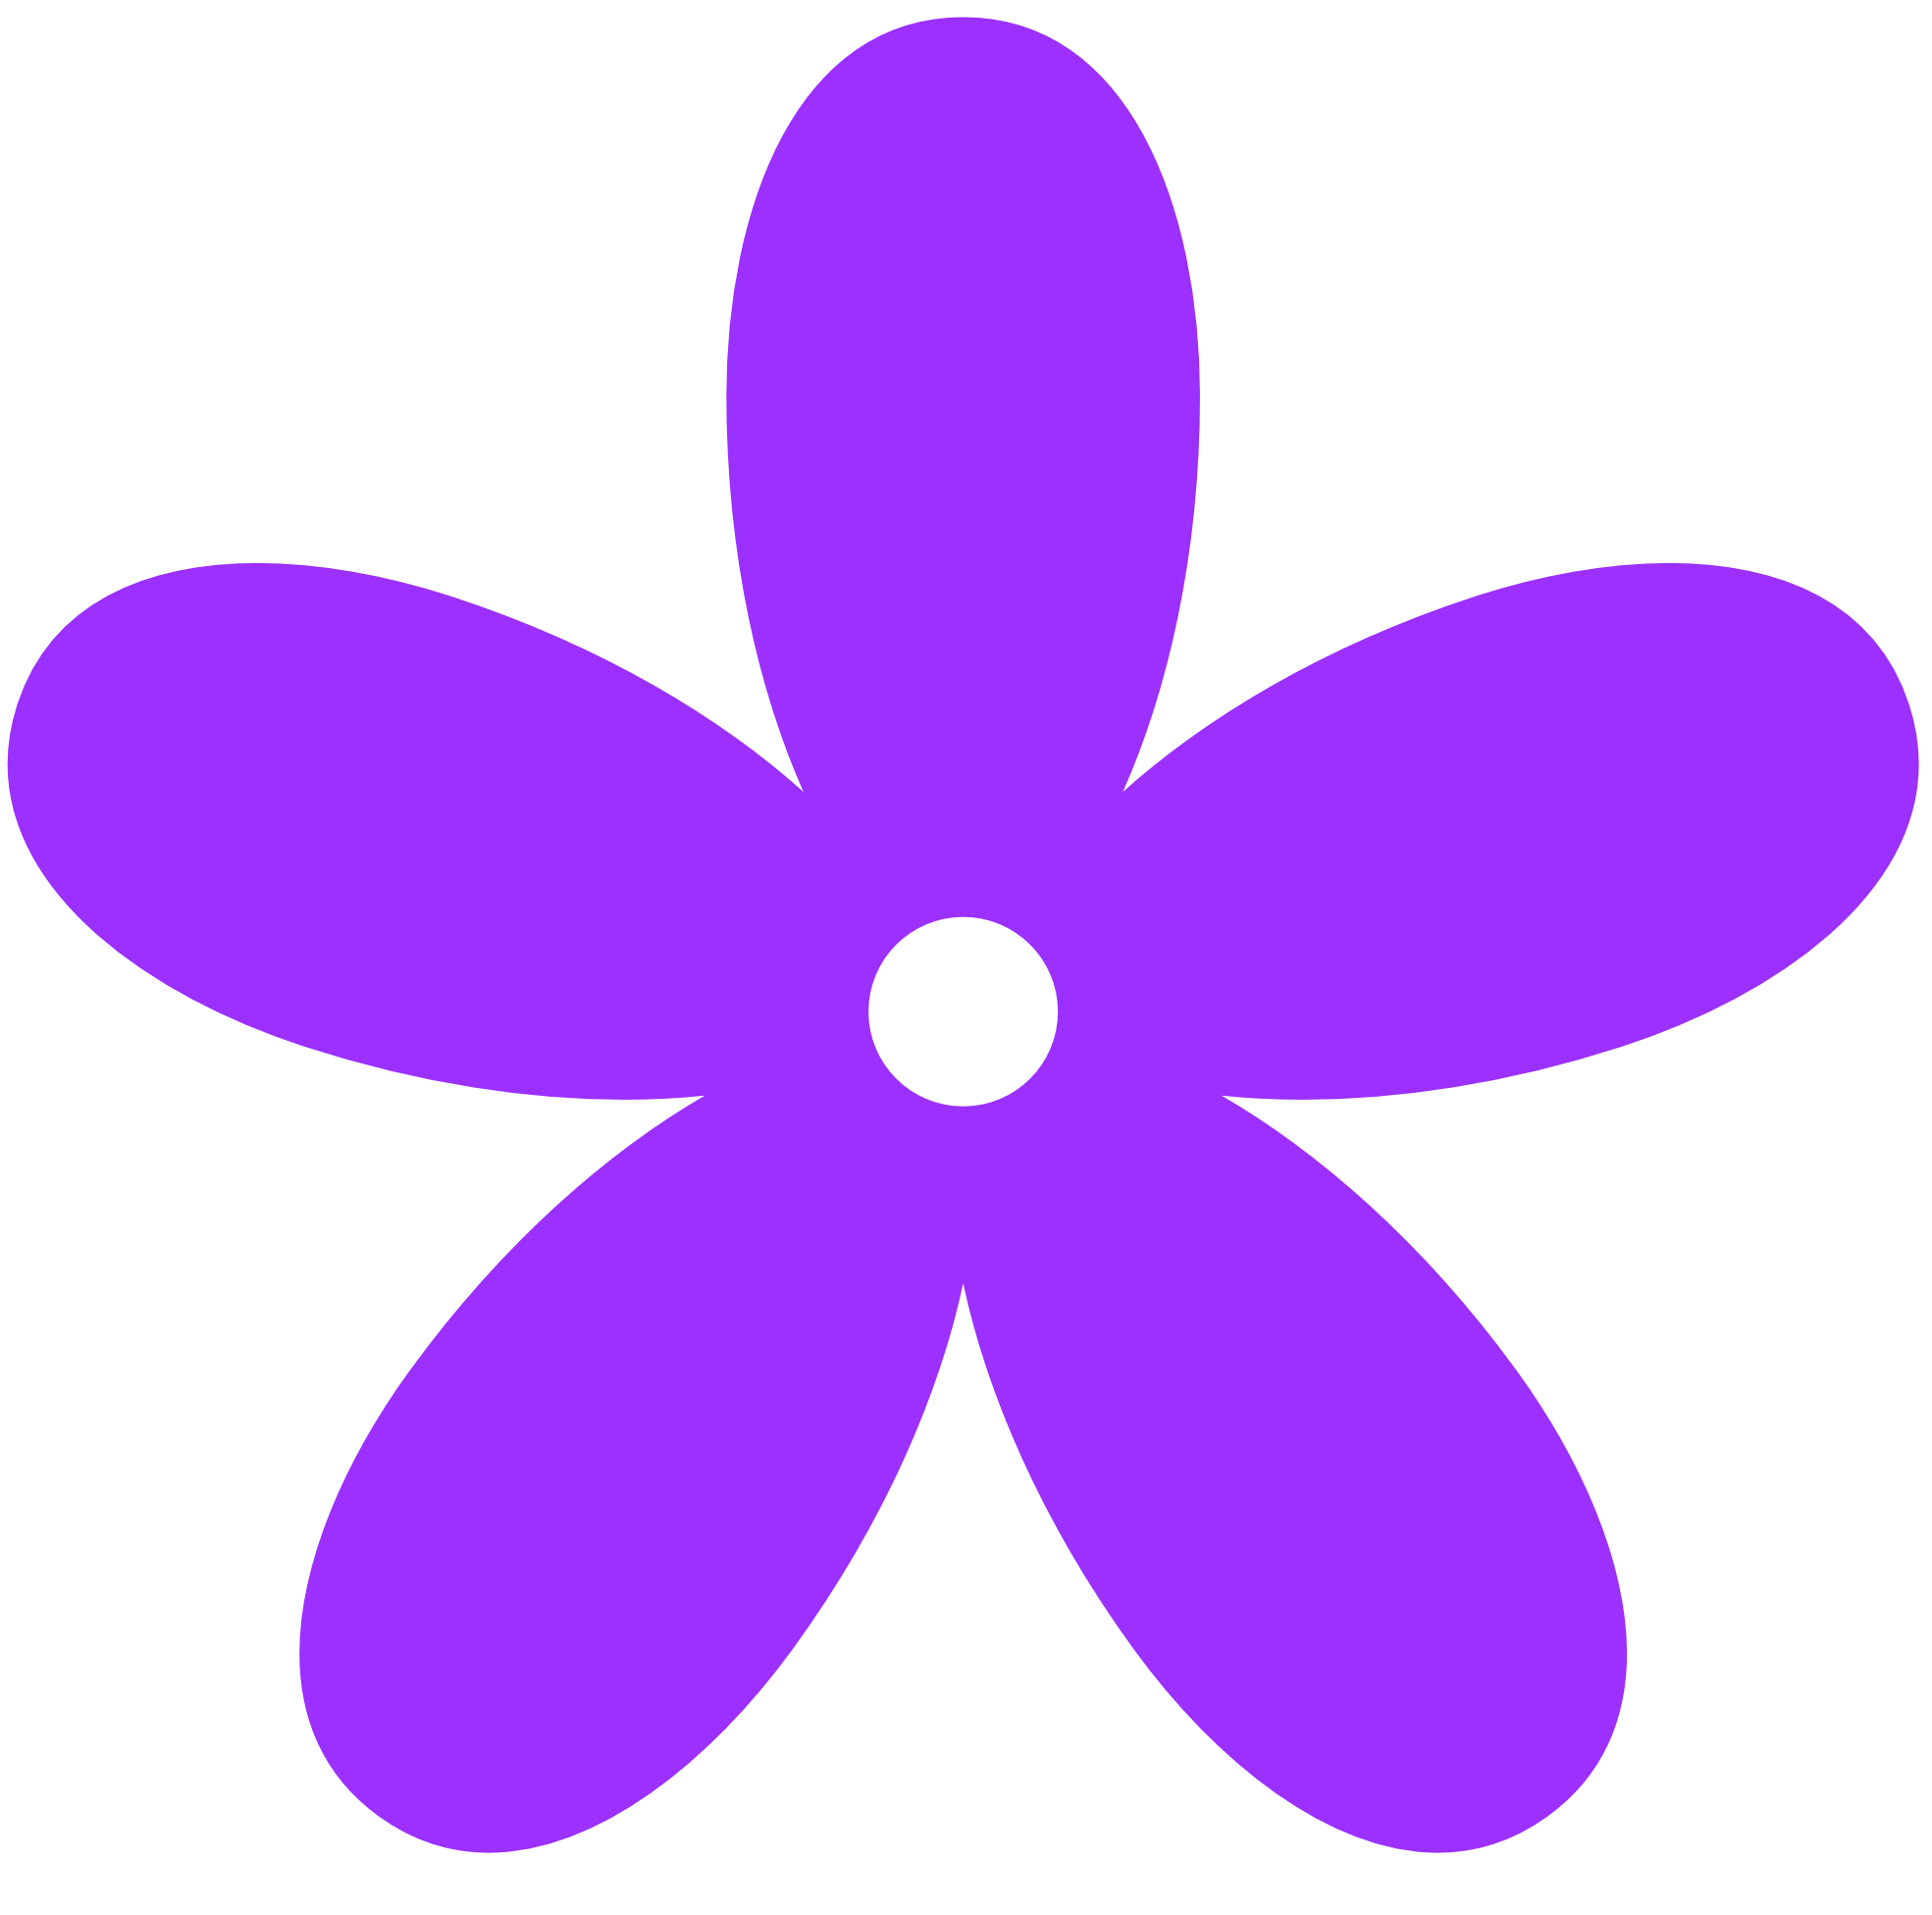 Free Purple Flower Clip Art - Cliparts.co